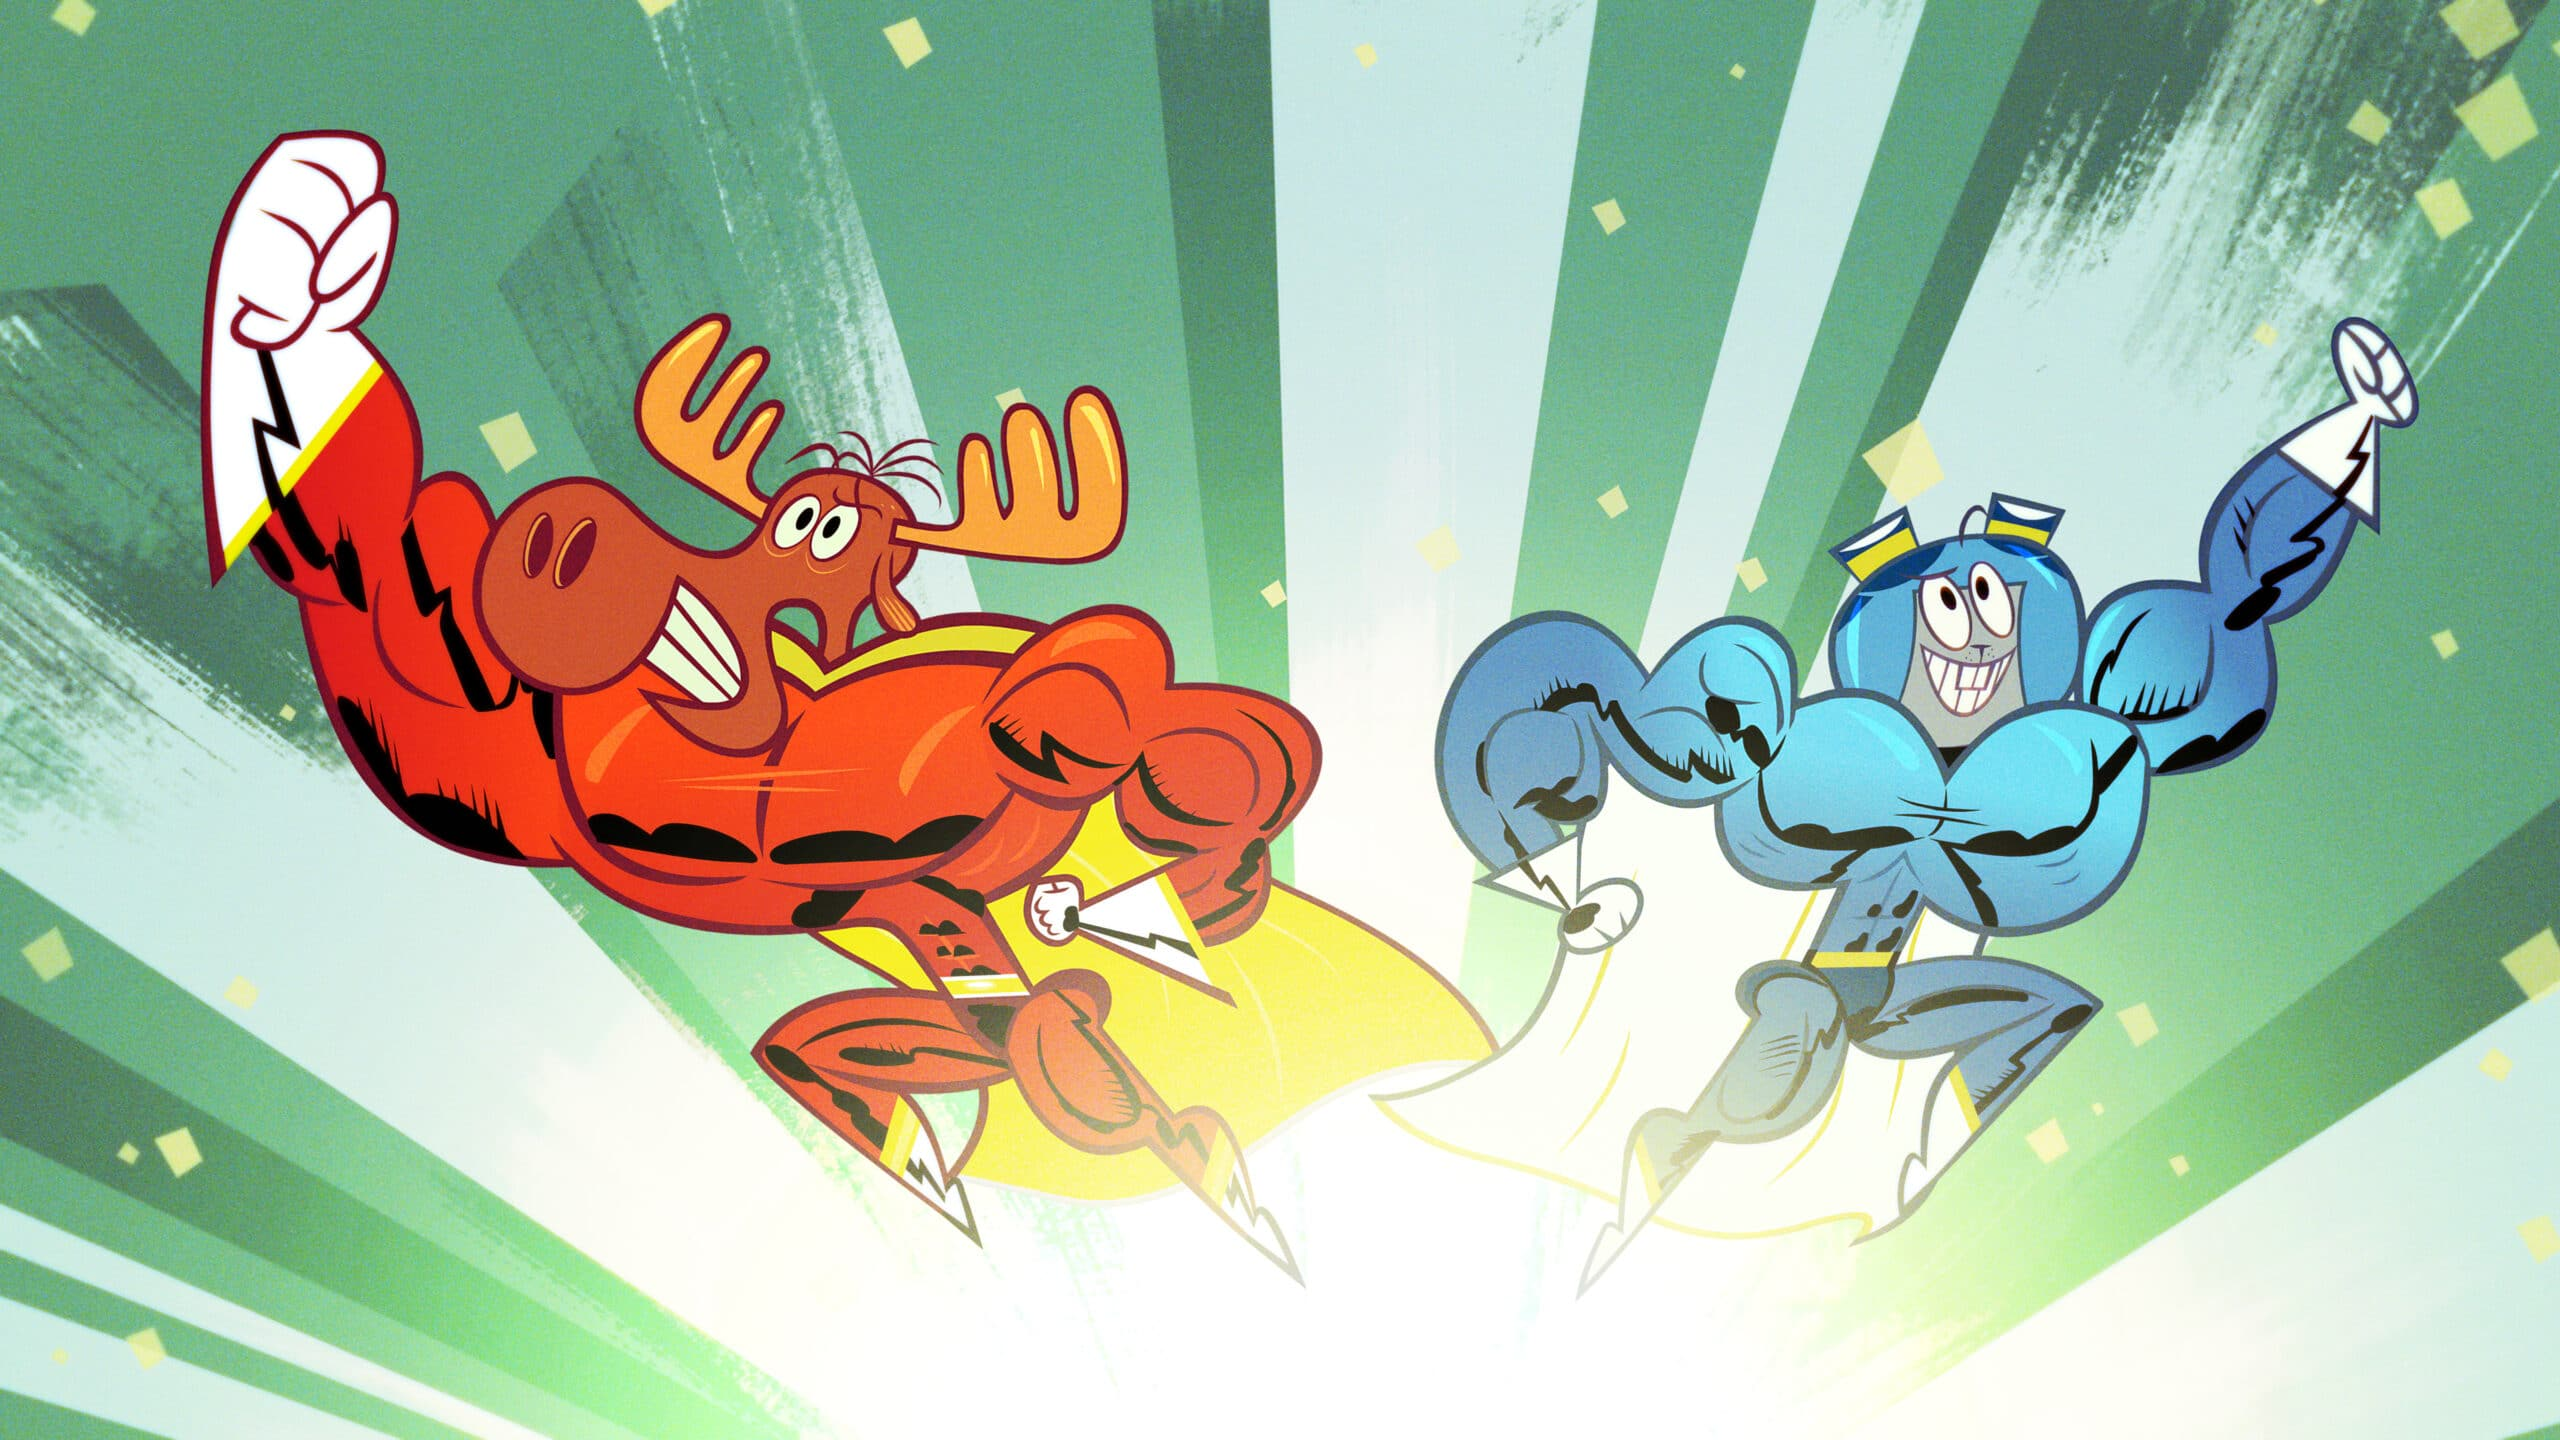 The Adventures of Rocky and Bullwinkle season two Super Buff. DreamWorks The Adventures of Rocky and Bullwinkle season two is now available on Amazon Prime Video. Your favorite squirrel and moose are back for more daring escapades and we have two fun clips to share with you!